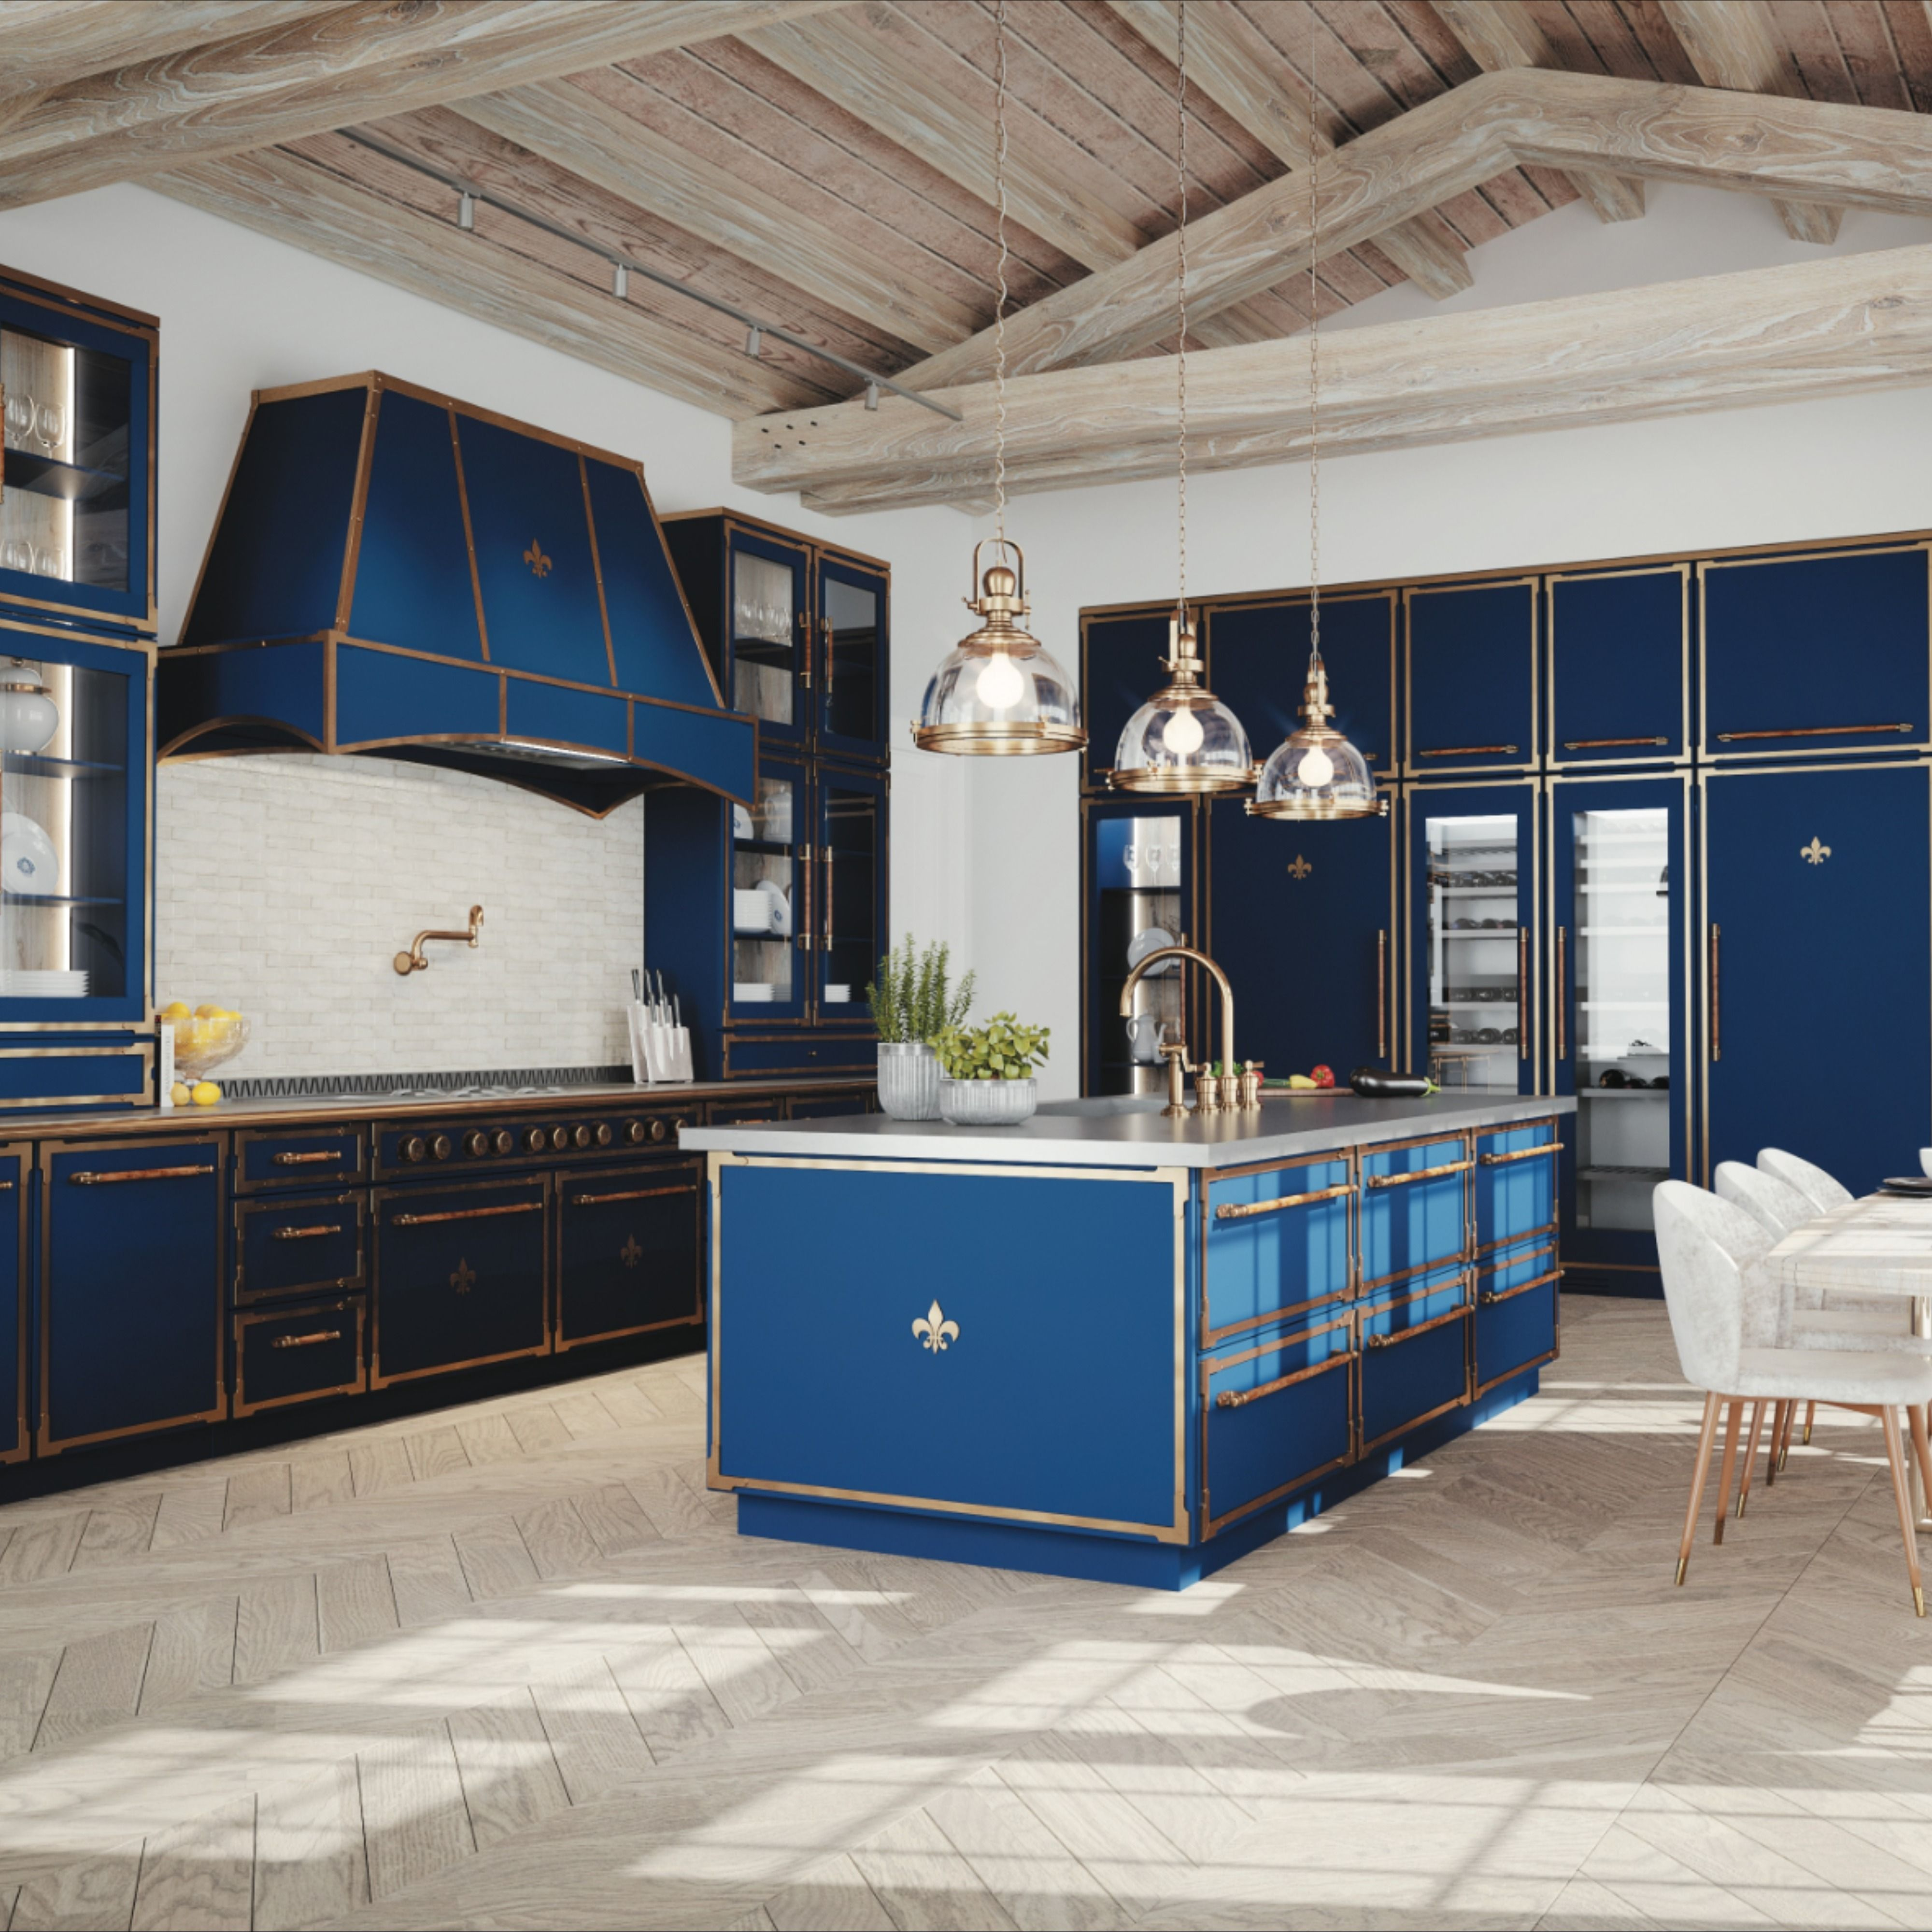 French Country In 2020 Beautiful Kitchens Luxury Kitchens Paris Interiors